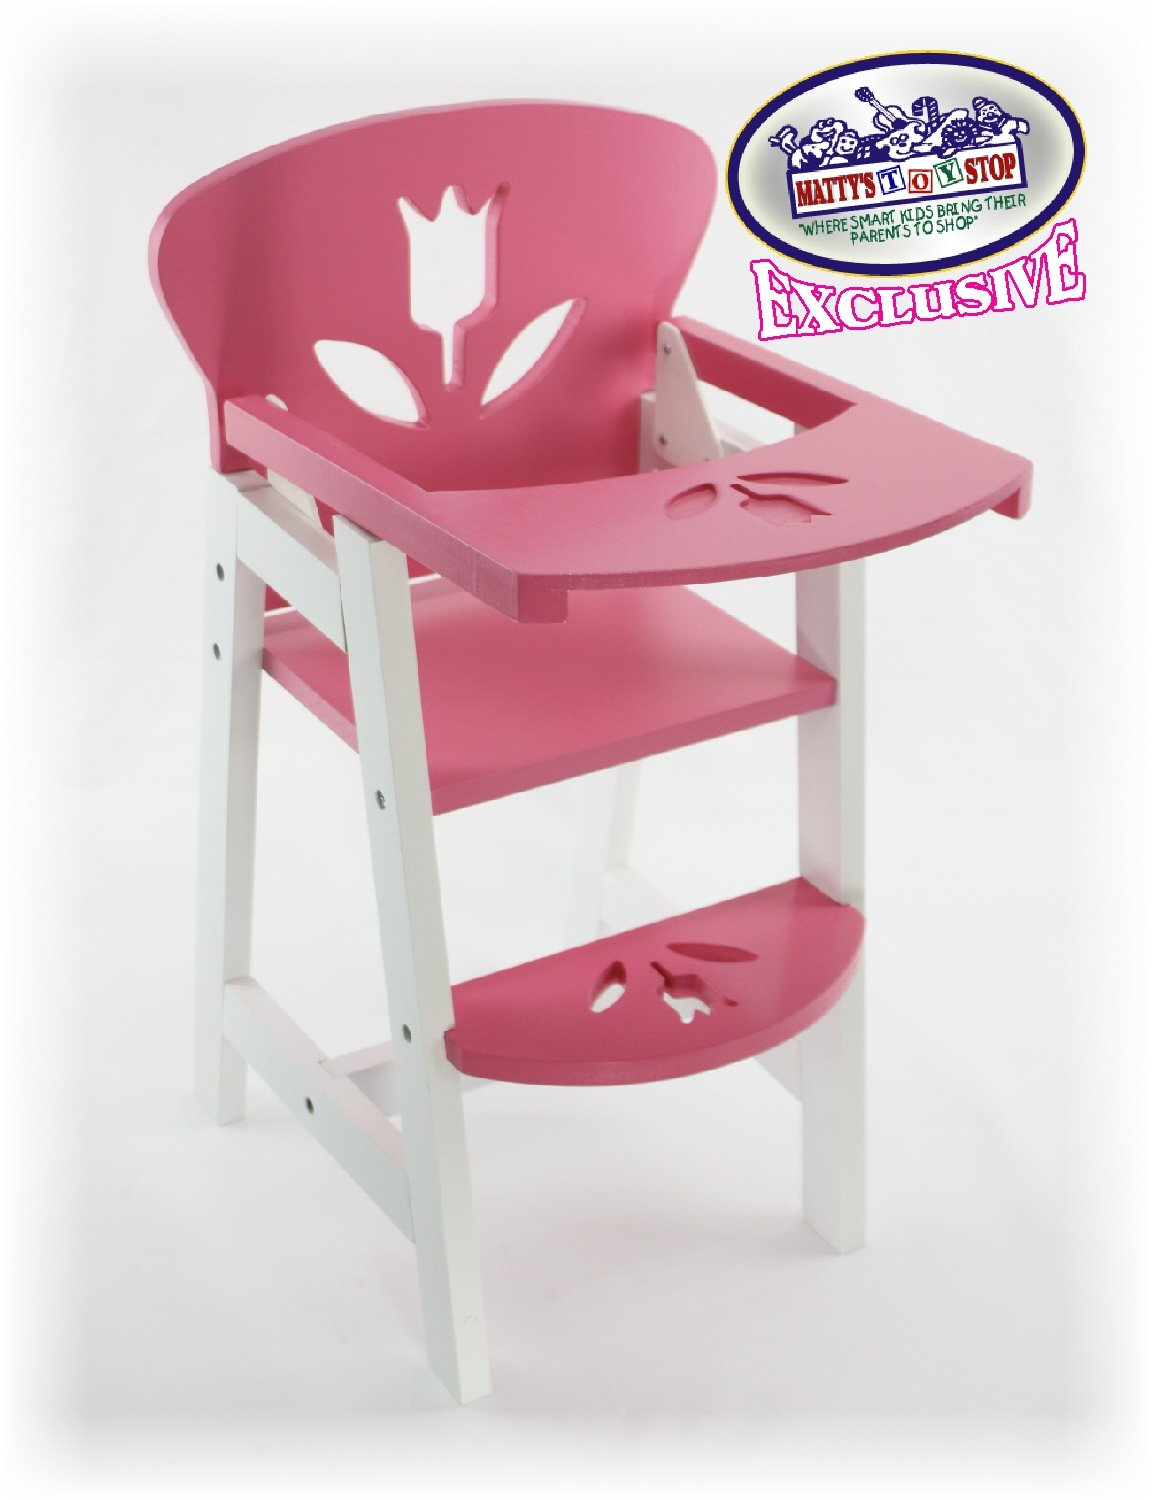 Pink u0026 White Wooden Doll High Chair with Lift-Up Tray for up to 20 inch Dolls & Pink u0026 White Wooden Doll High Chair with Lift-Up Tray for up to 20 ...